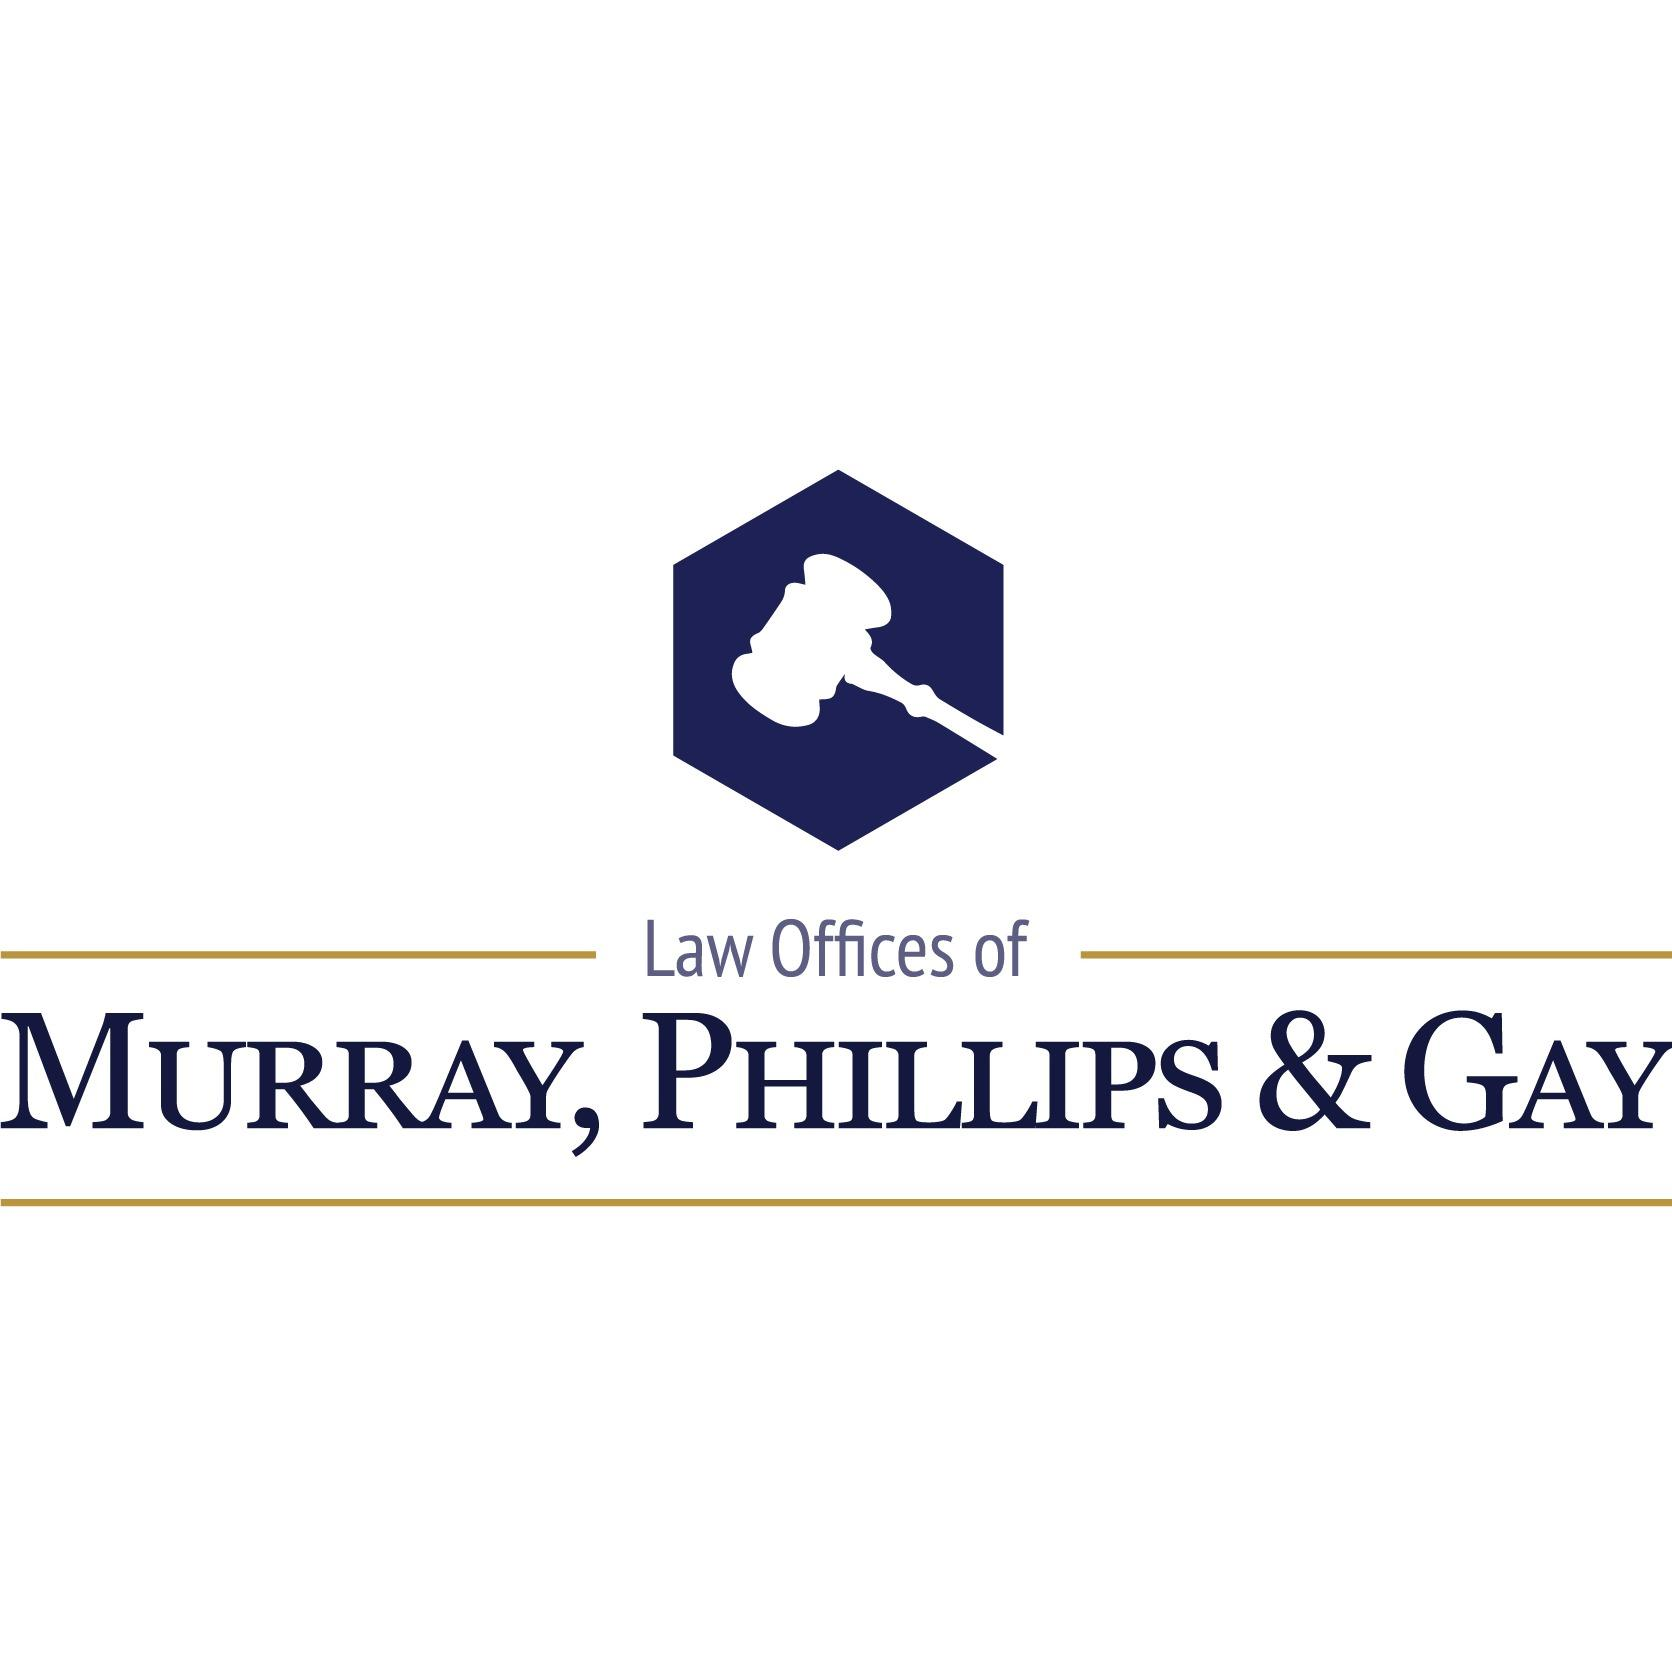 Law Offices of Murray, Phillips & Gay - Milford, DE 19963 - (302)422-9300 | ShowMeLocal.com